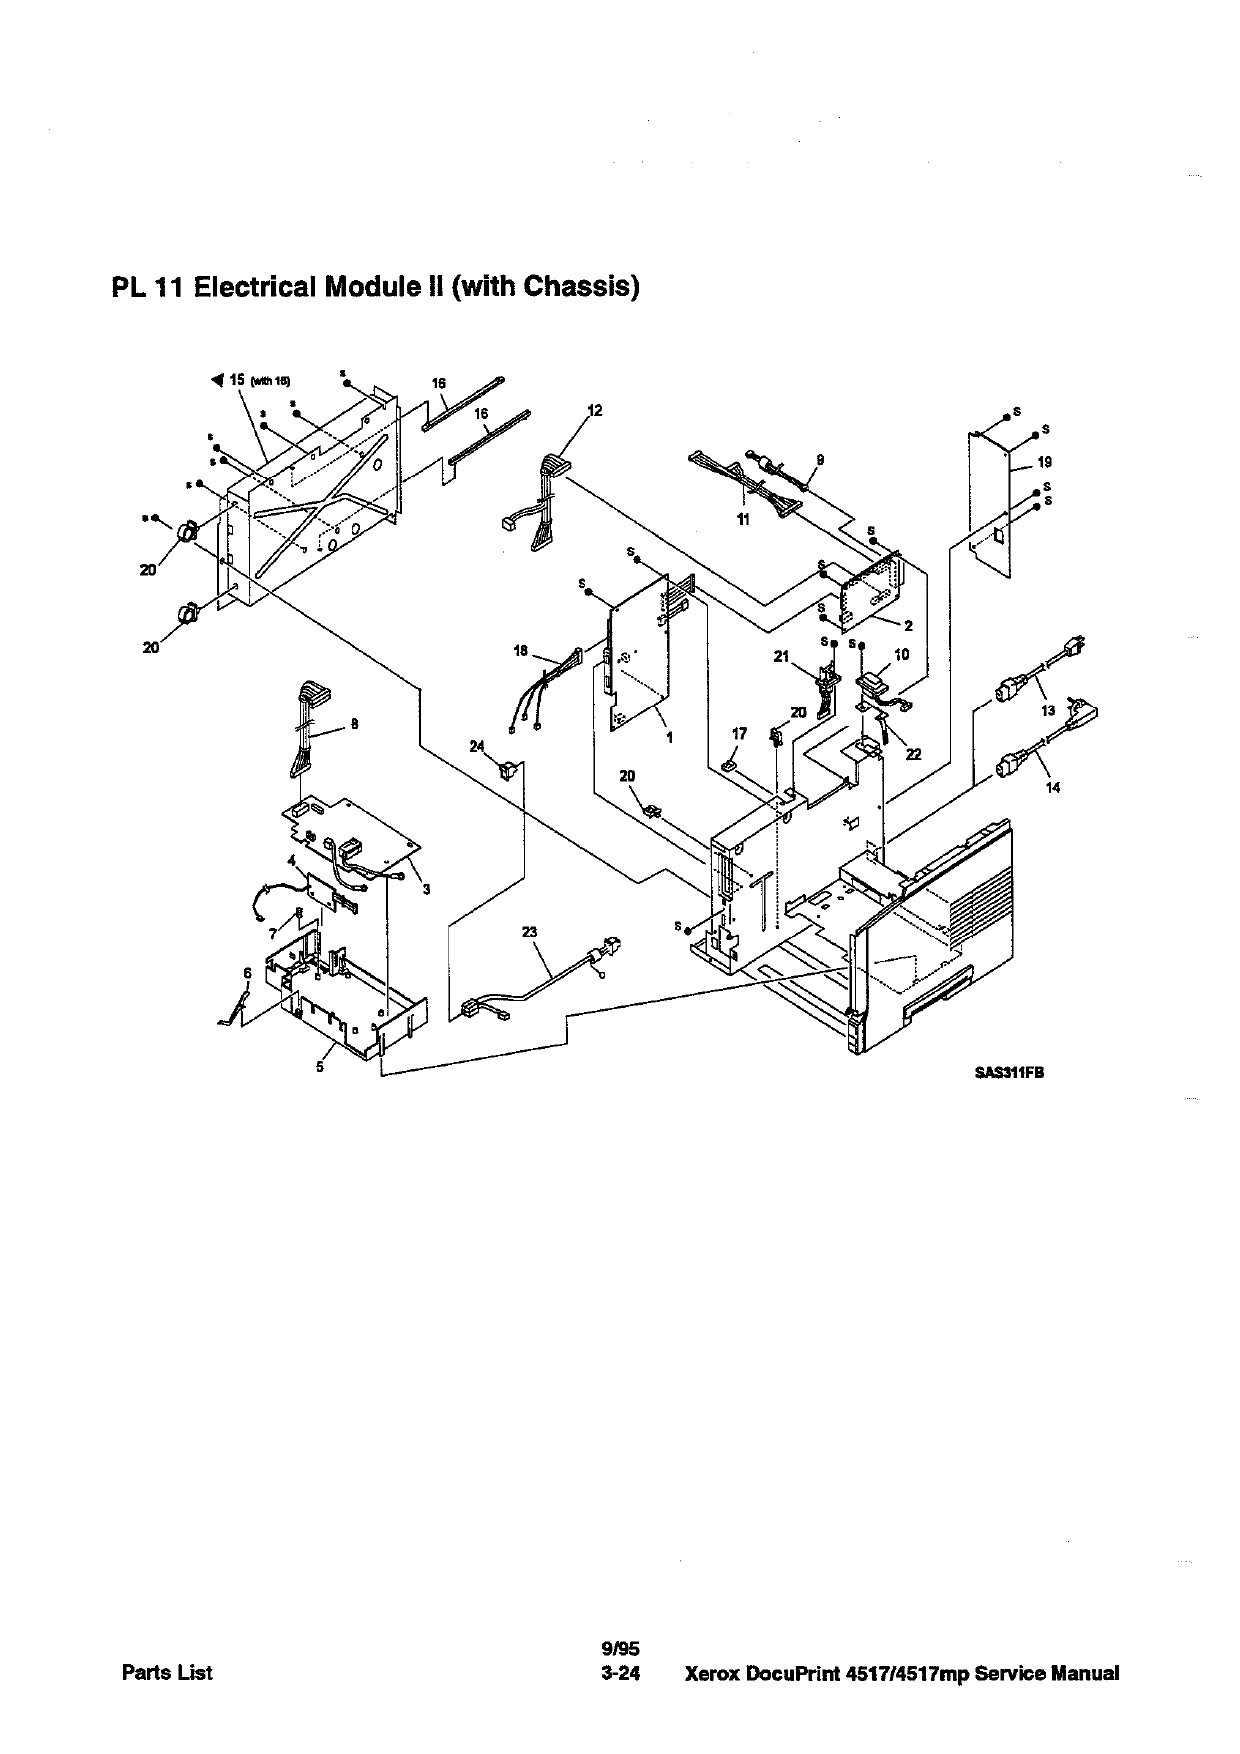 Xerox DocuPrint 4517 4517mp Service Manual